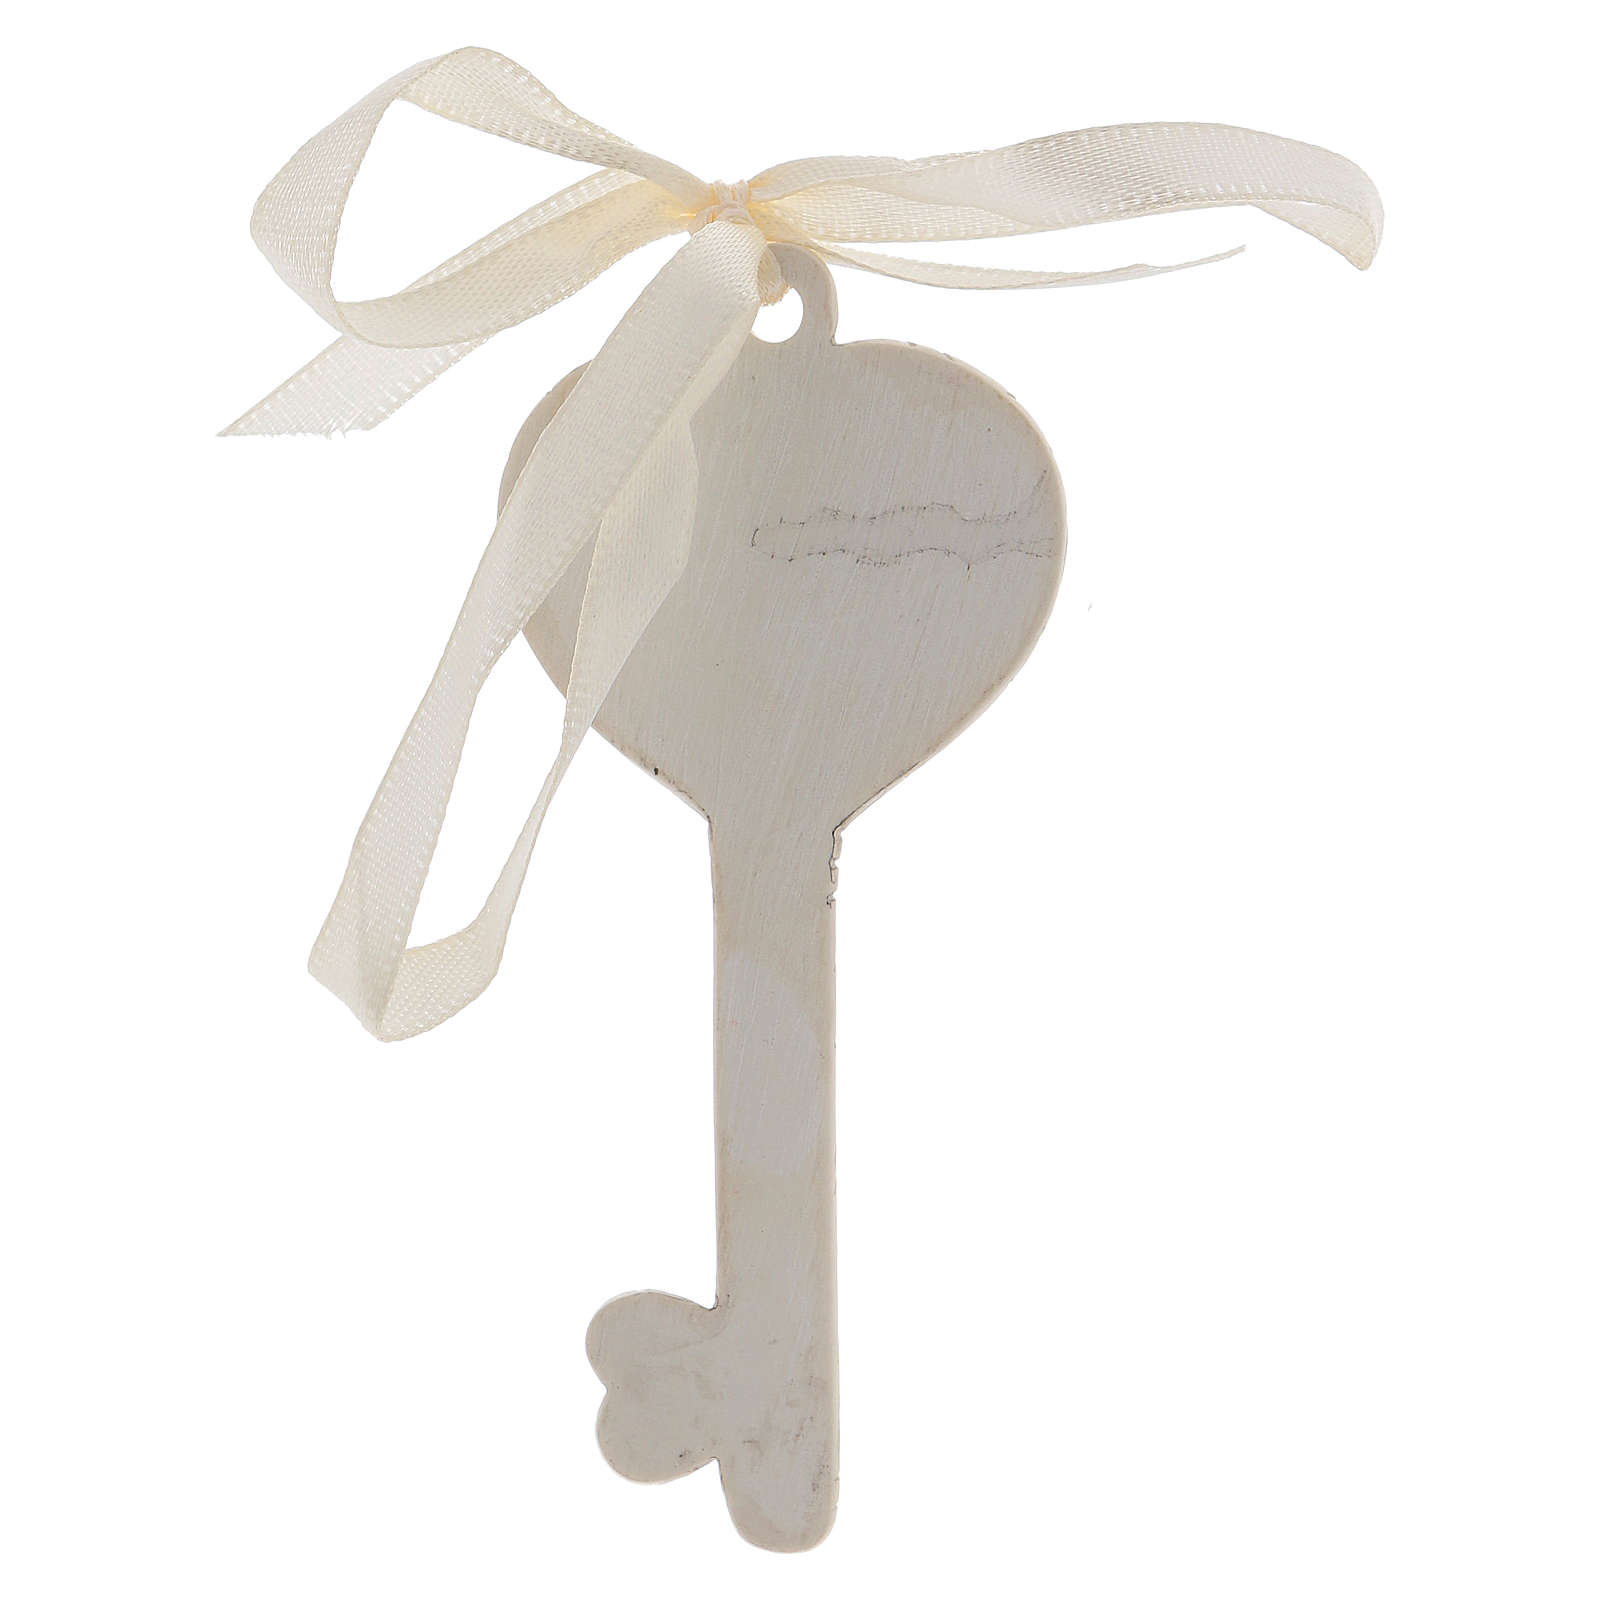 Key-shaped party favour for Confirmation 10x5 cm 3